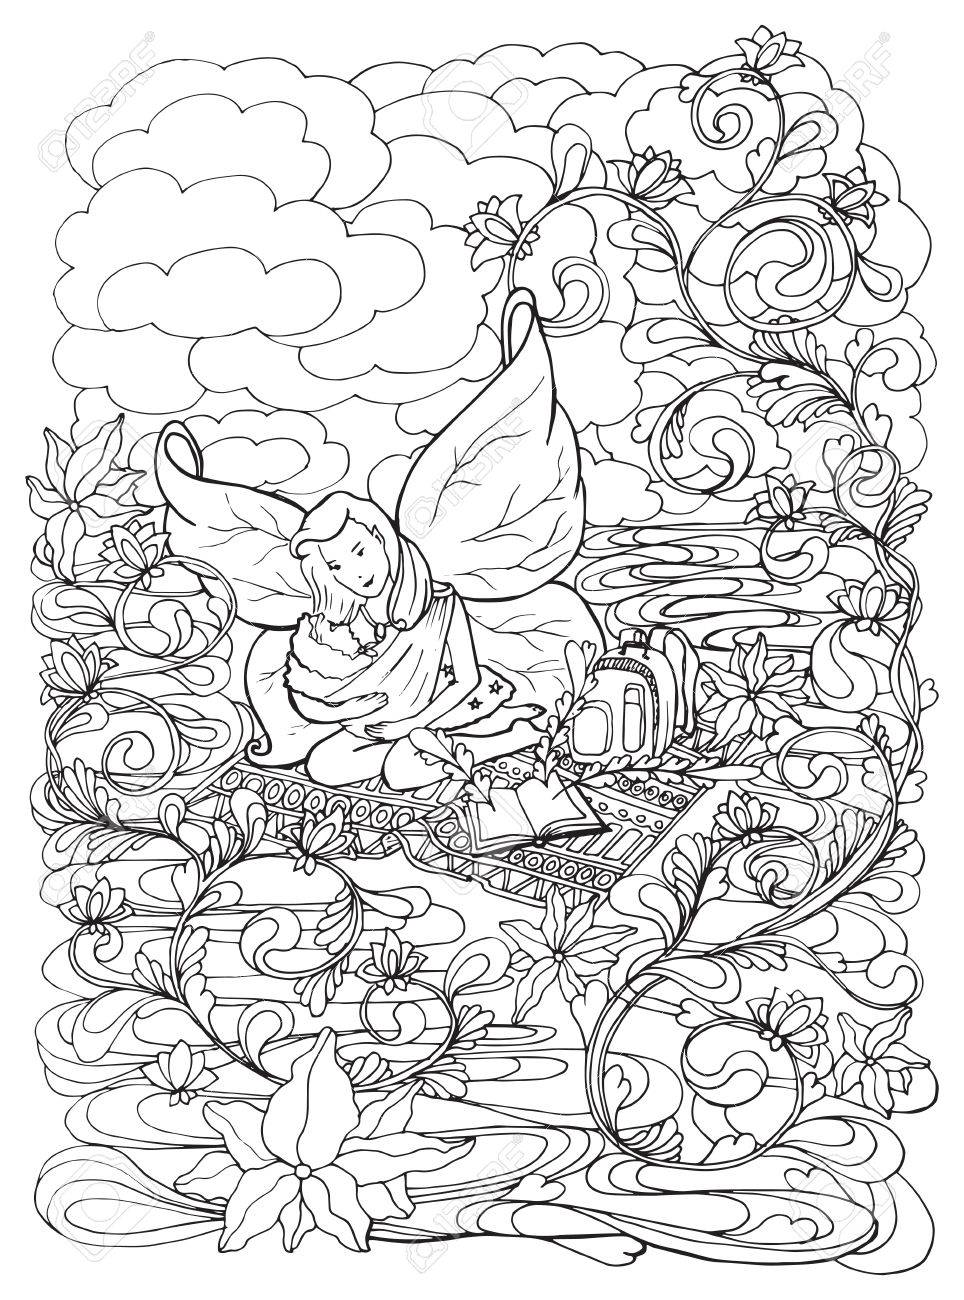 Adult Coloring Book Page With Mother Breast Feeding Her Baby ...